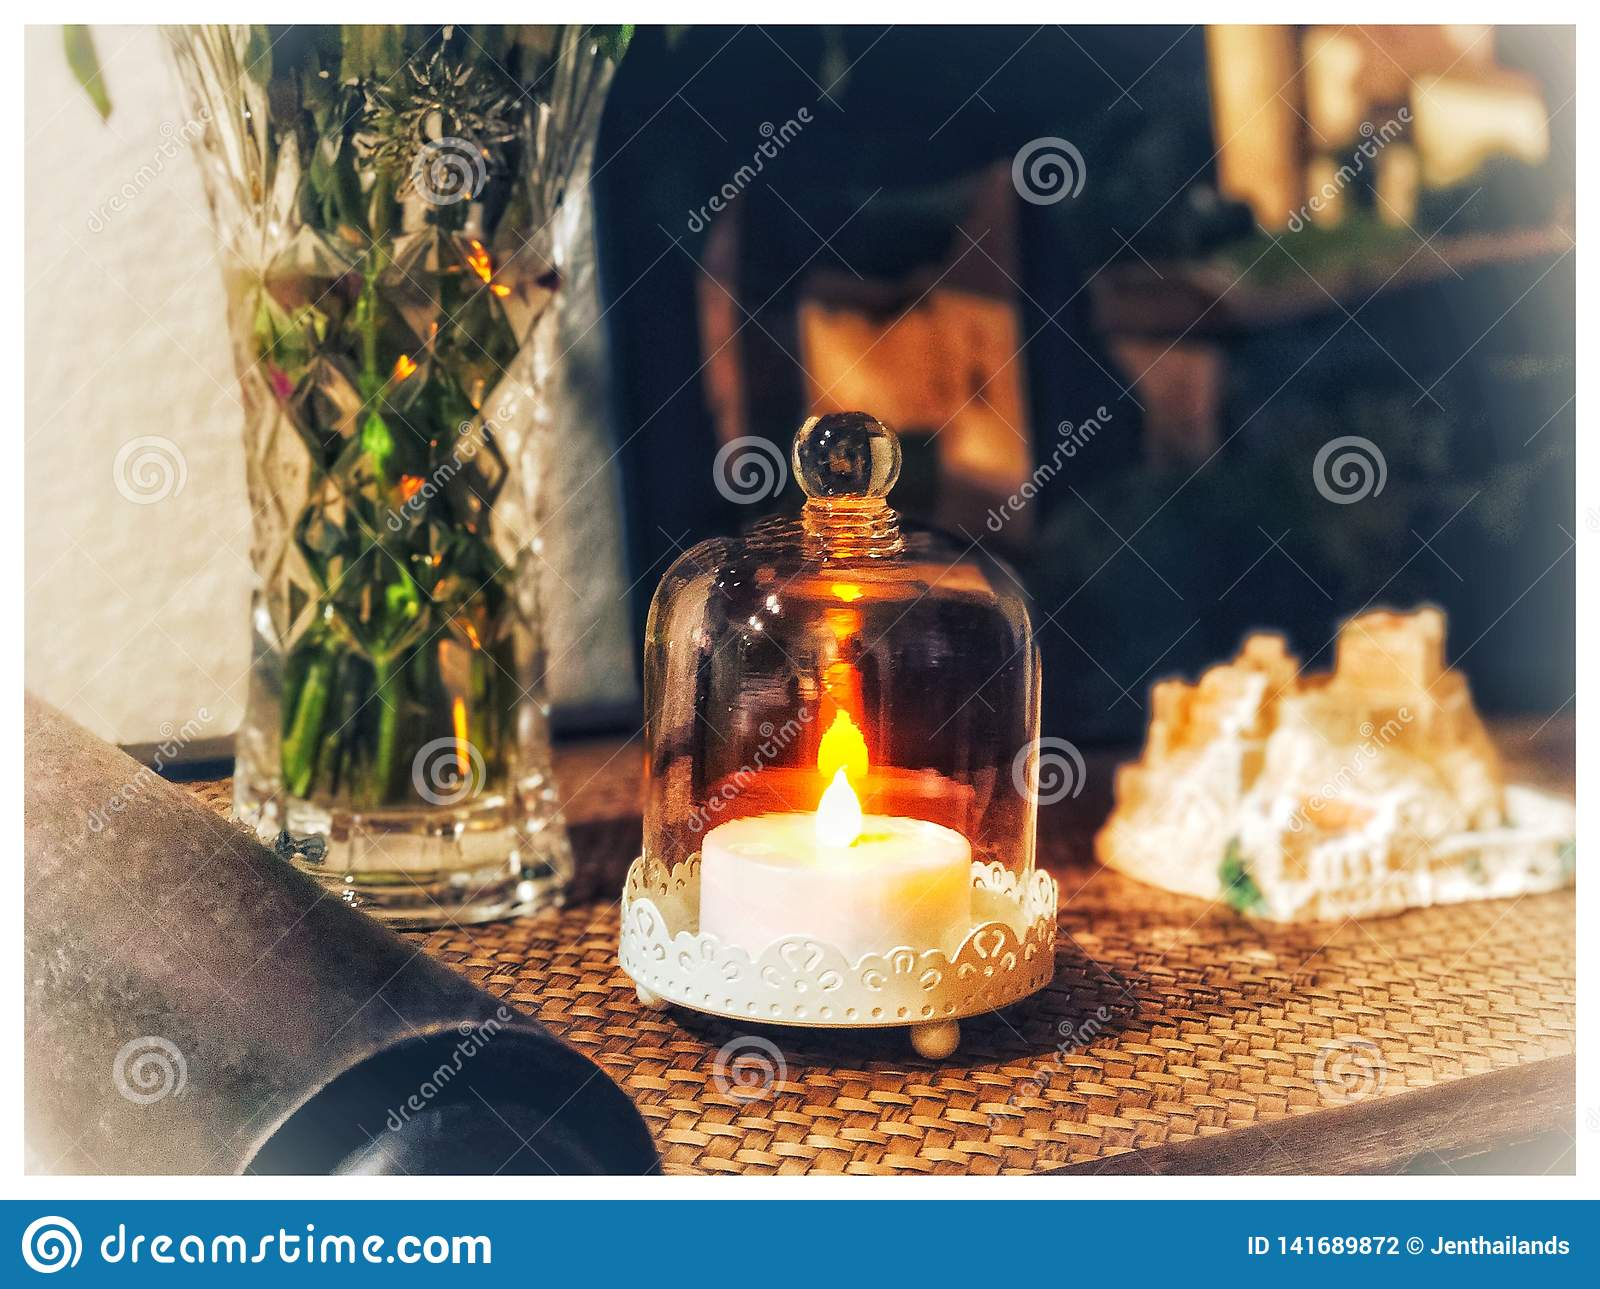 An electric candle burning under a glass on table